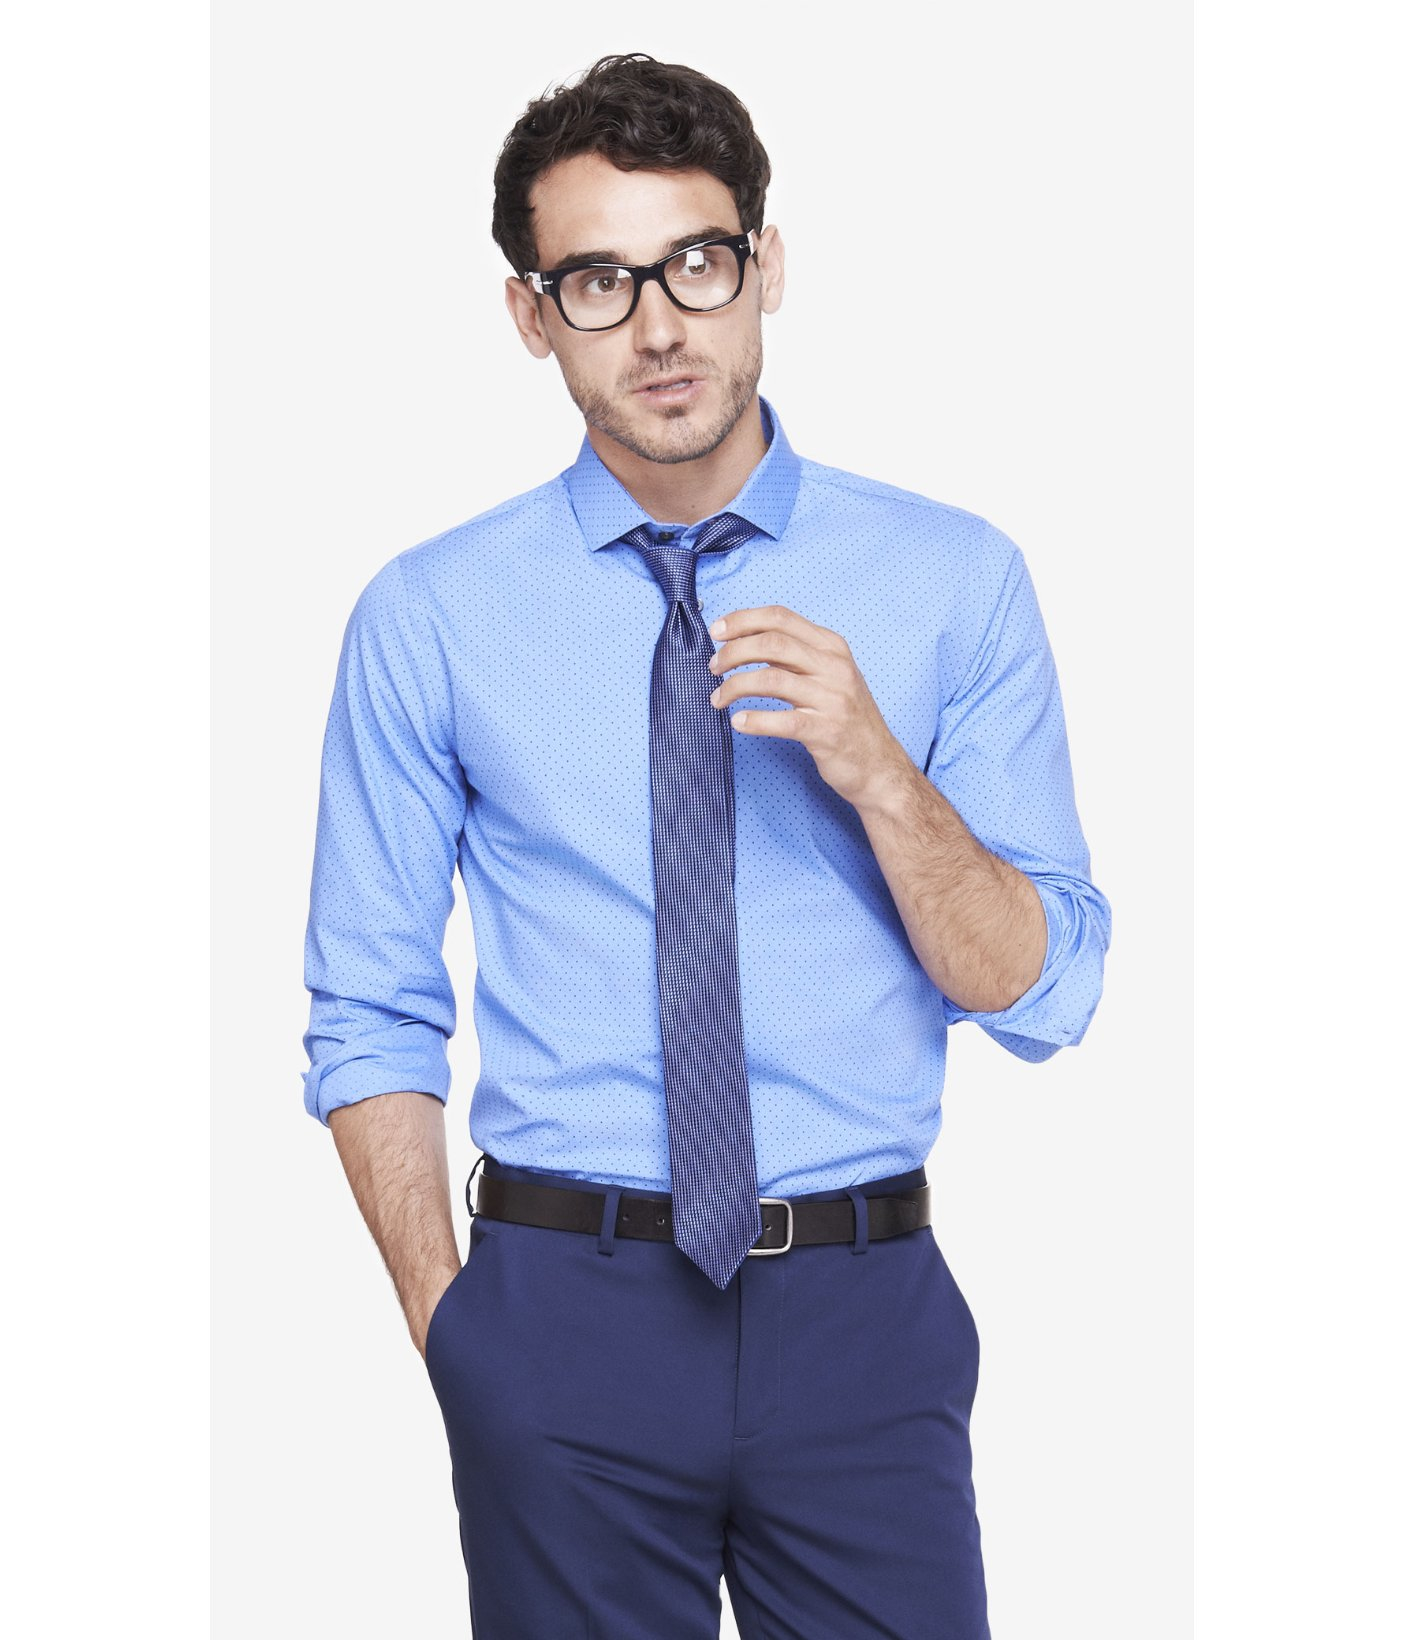 A dress shirt that doesn't fit isn't comfortable and doesn't look professional. Shop our 1MX and patterned dress shirts to try on our four favorite fits at Express. If the collar is too tight around your neck or there's gaps from pulling of buttons, go up a size or try a more relaxed fit.